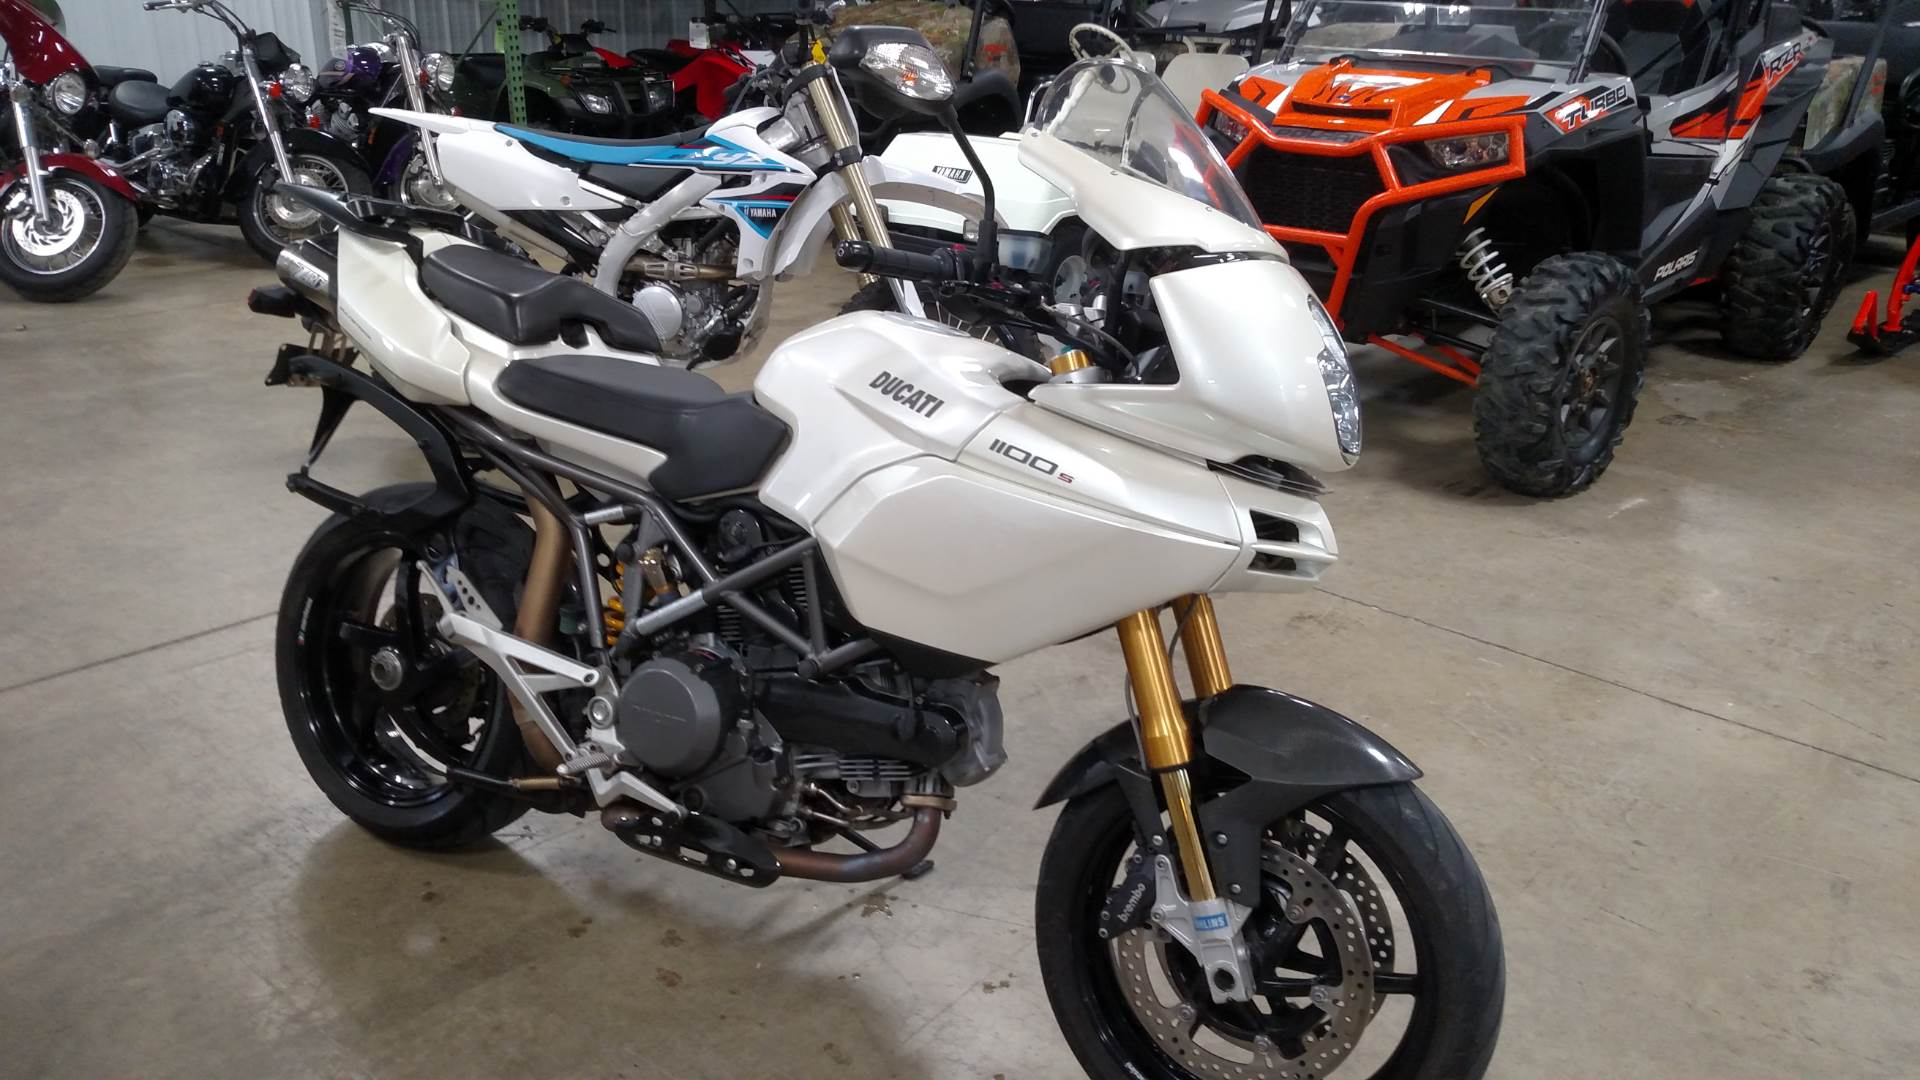 2009 Ducati Multistrada 1100 S in Huron, Ohio - Photo 1